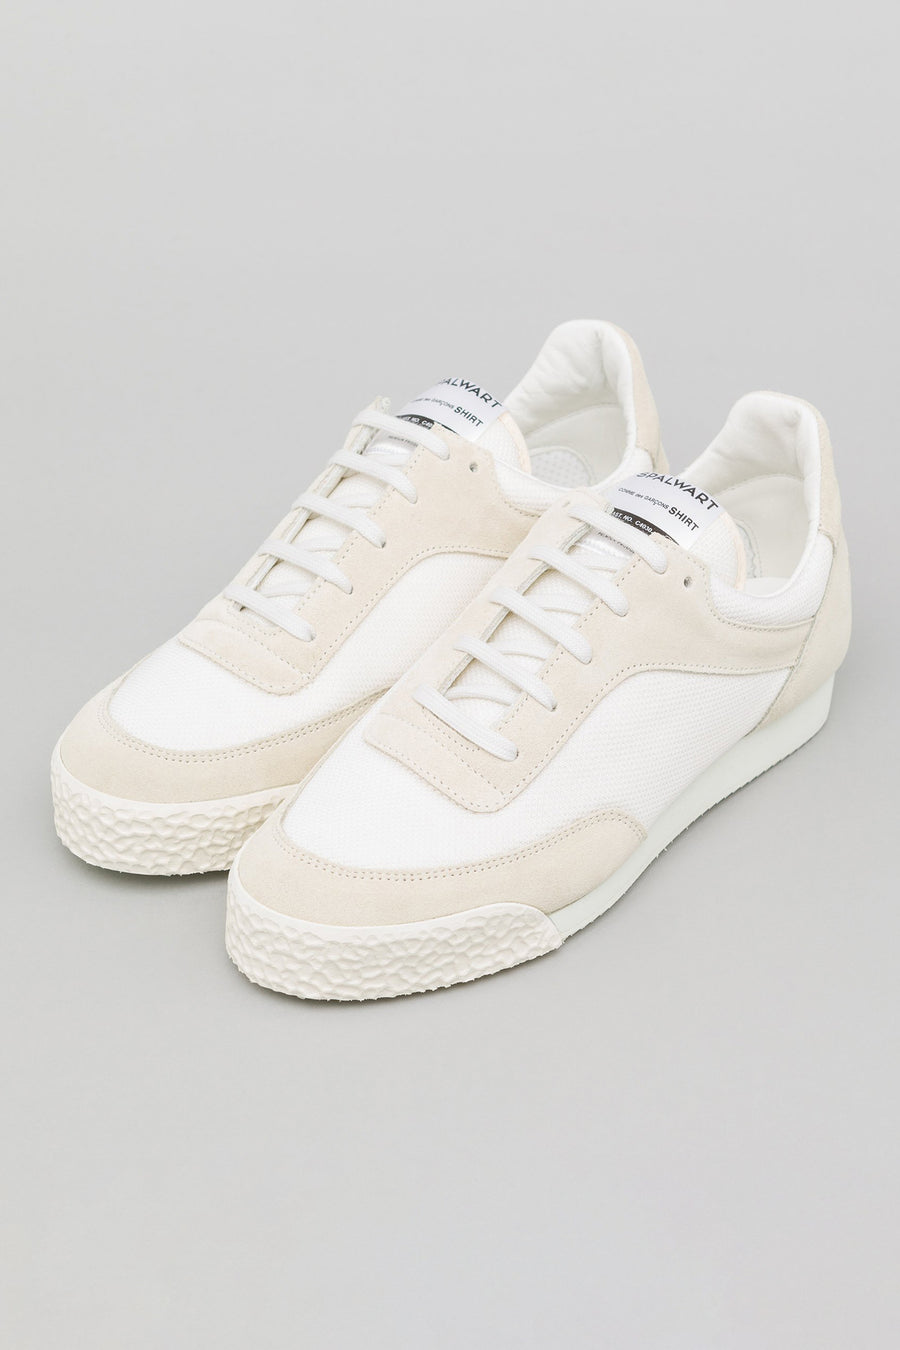 Comme des Garcons Shirt x Spalwart Pitch Low in White - Notre